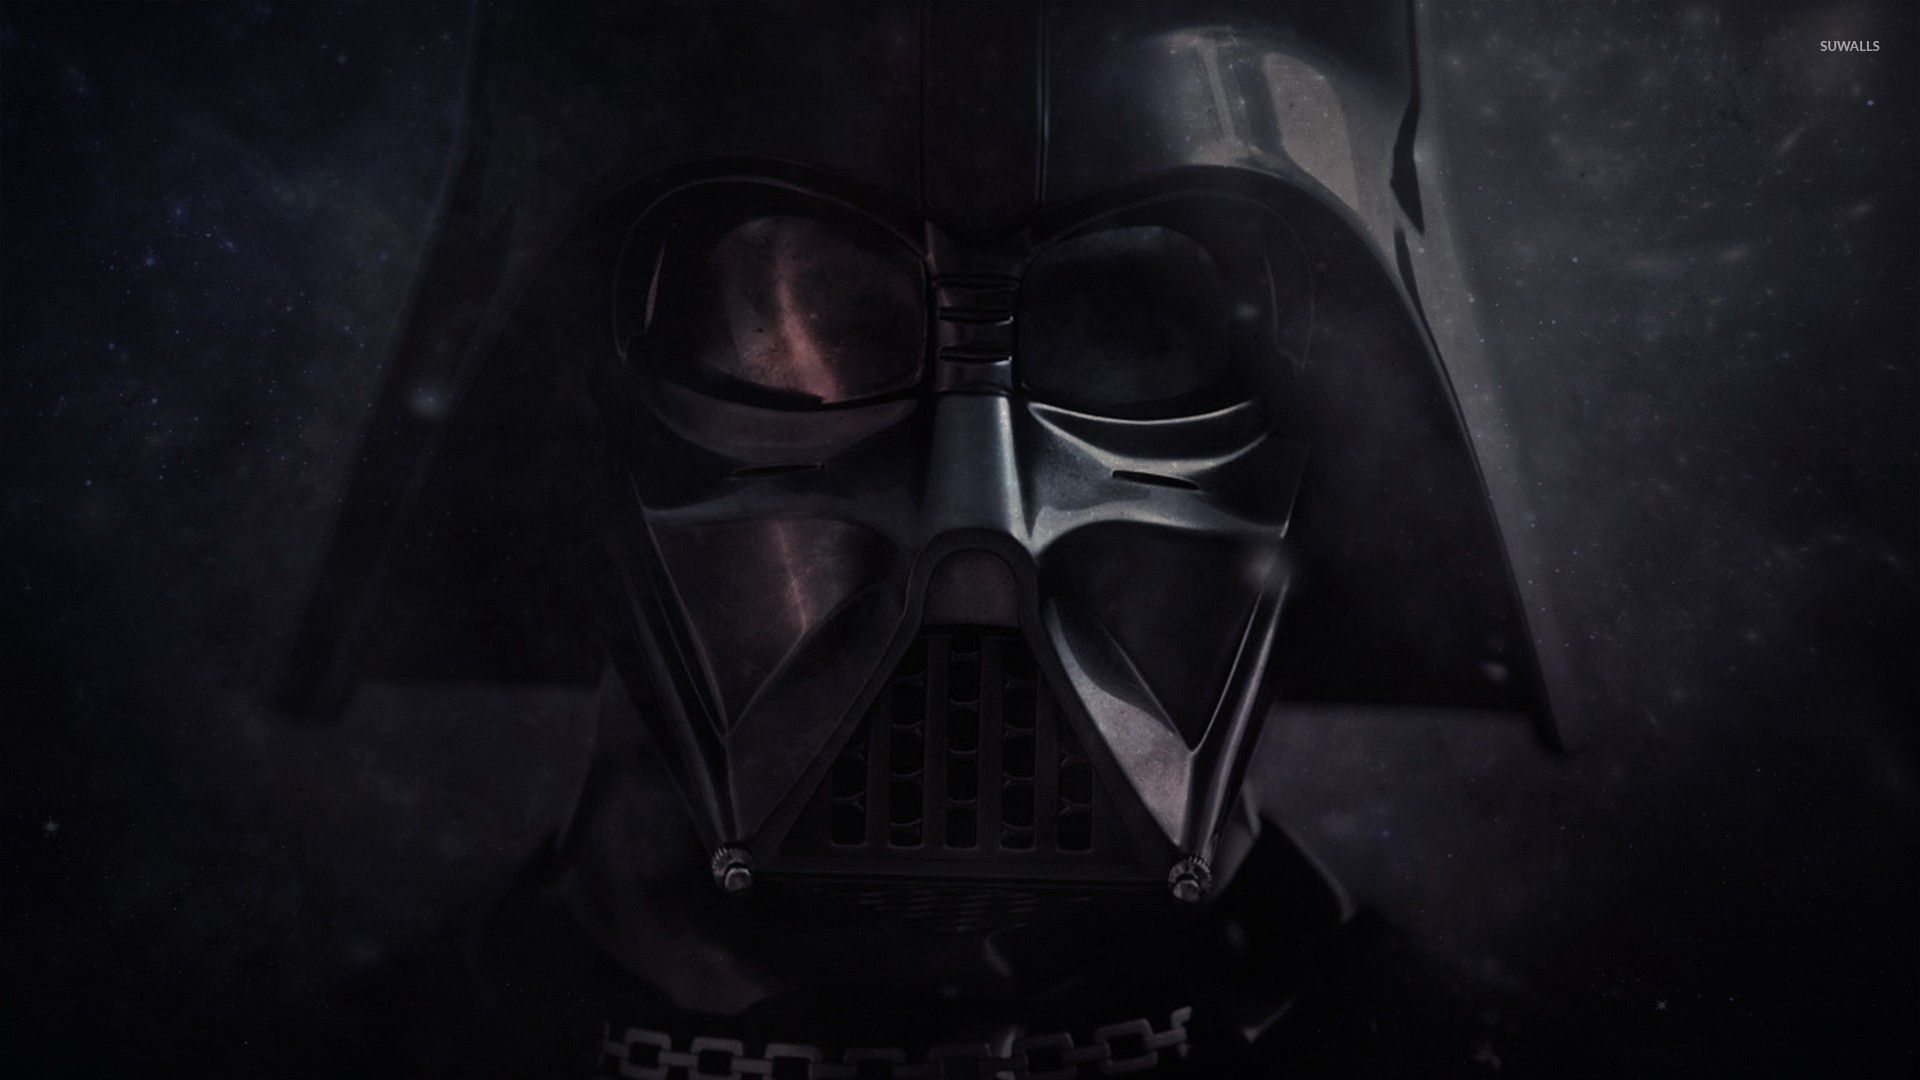 Darth Vader 4 Wallpaper Movie Wallpapers 27456